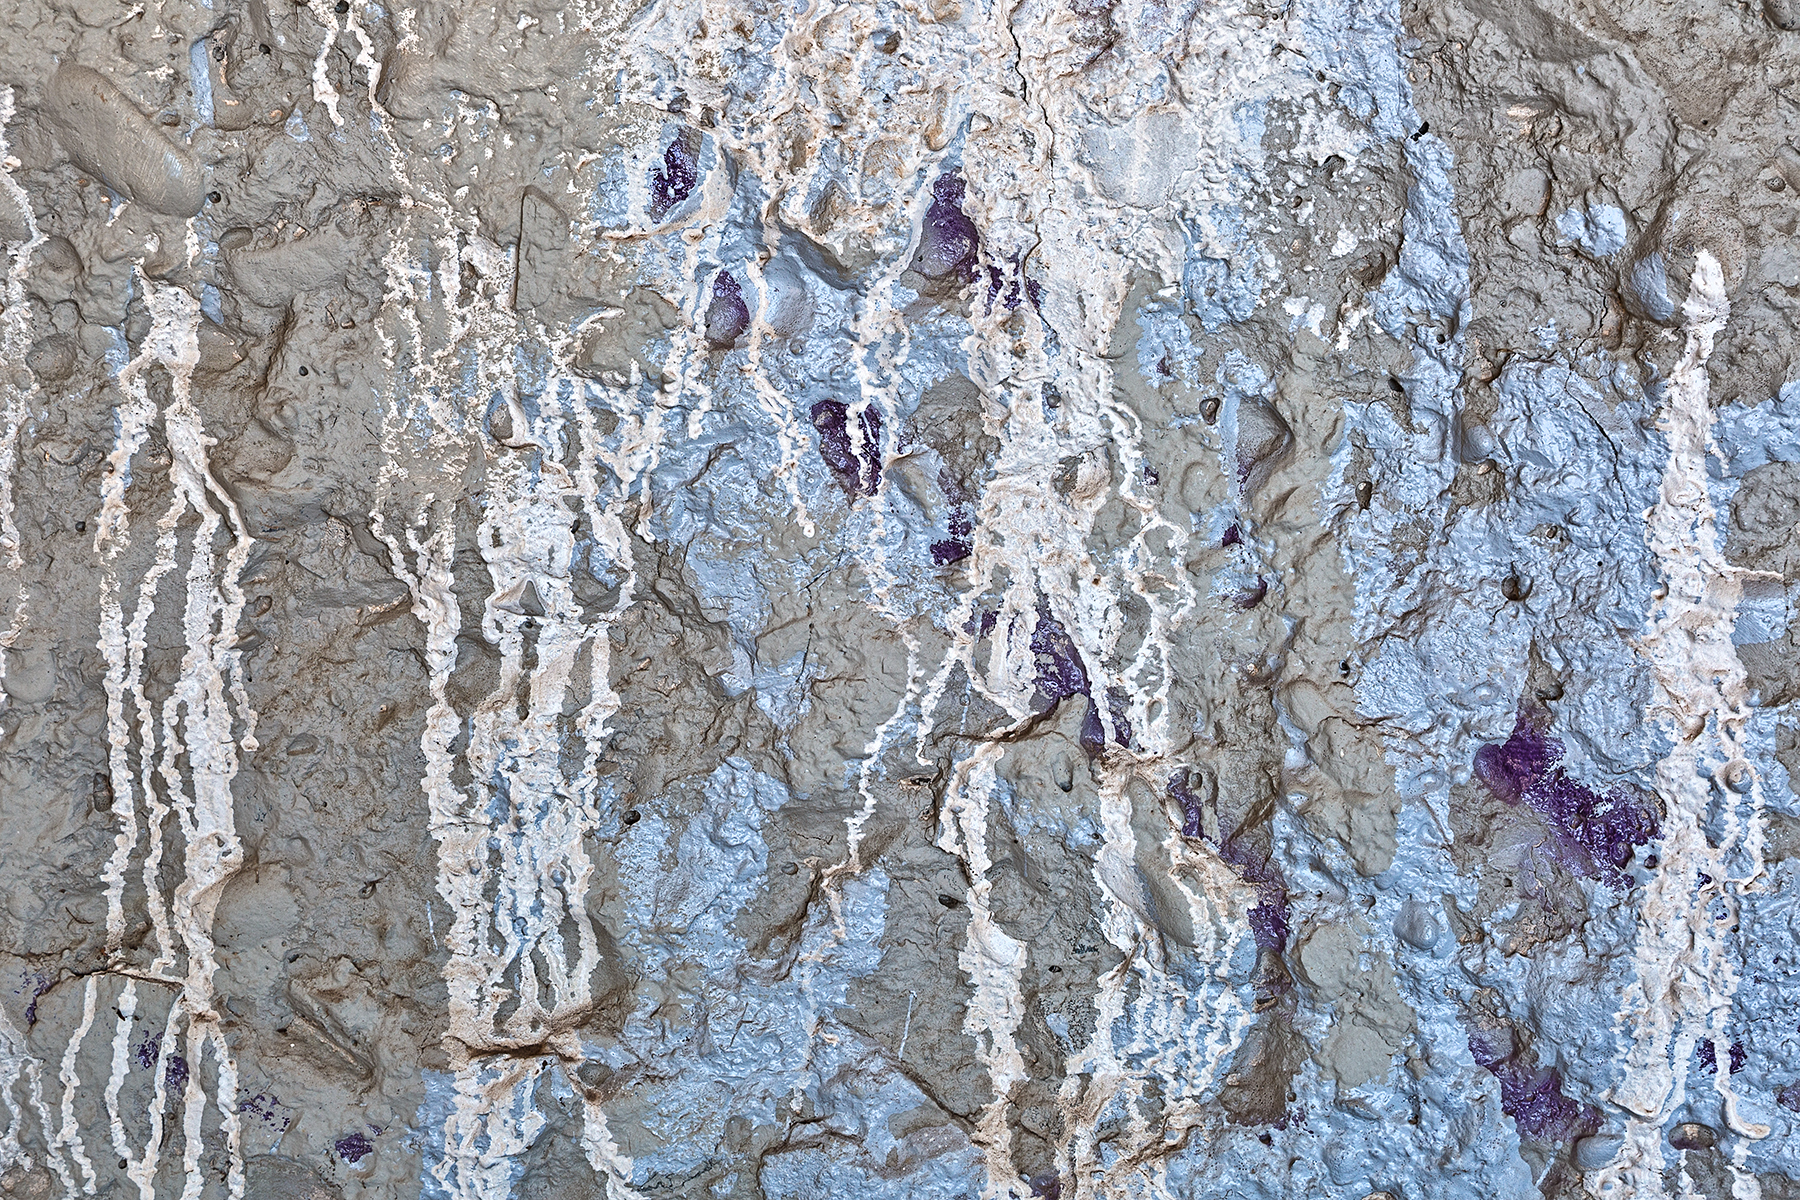 Dried Dripping Grunge Paint - HDR Textur, Abstract, Picture, Resource, Raymond, HQ Photo